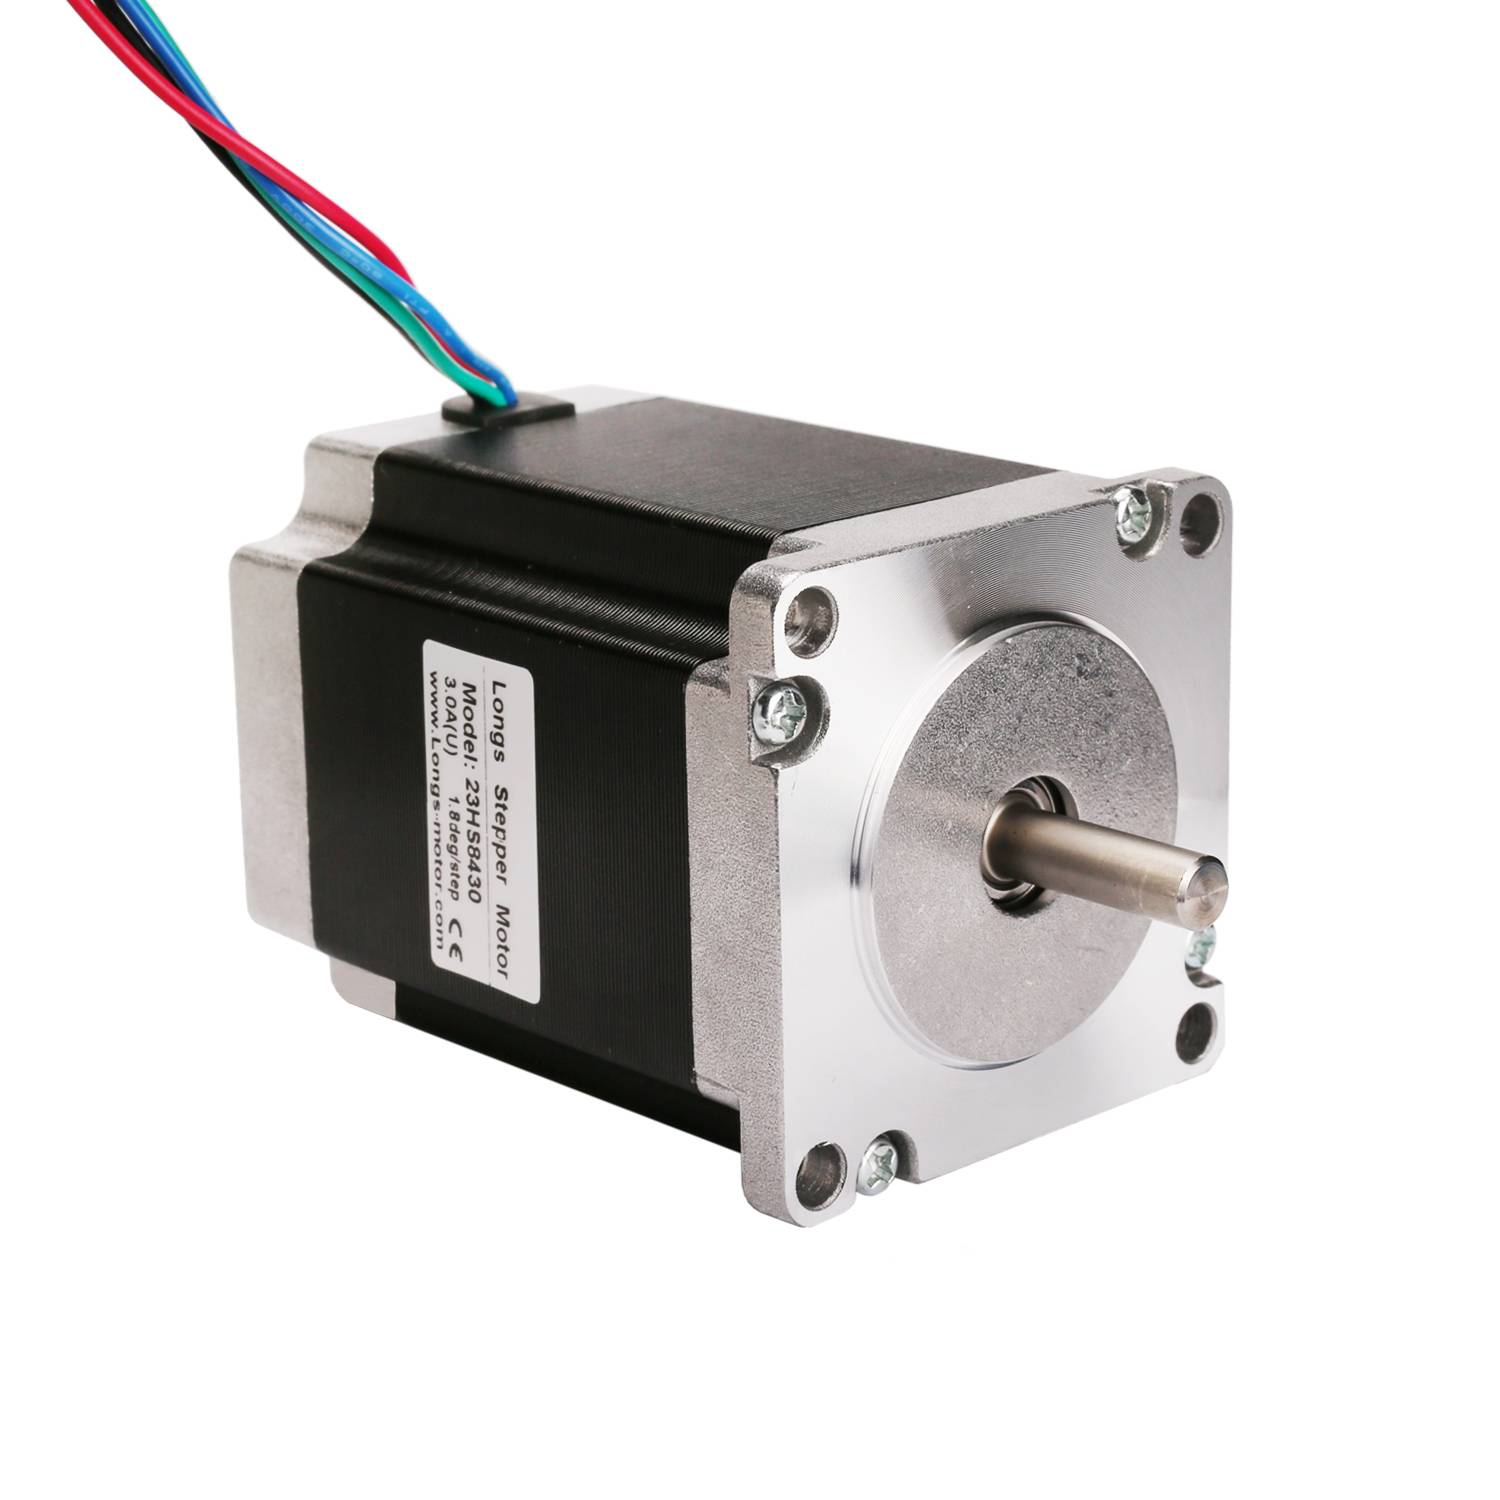 Hybrid Stepper MOTOR-nema23HS Featured Bildo